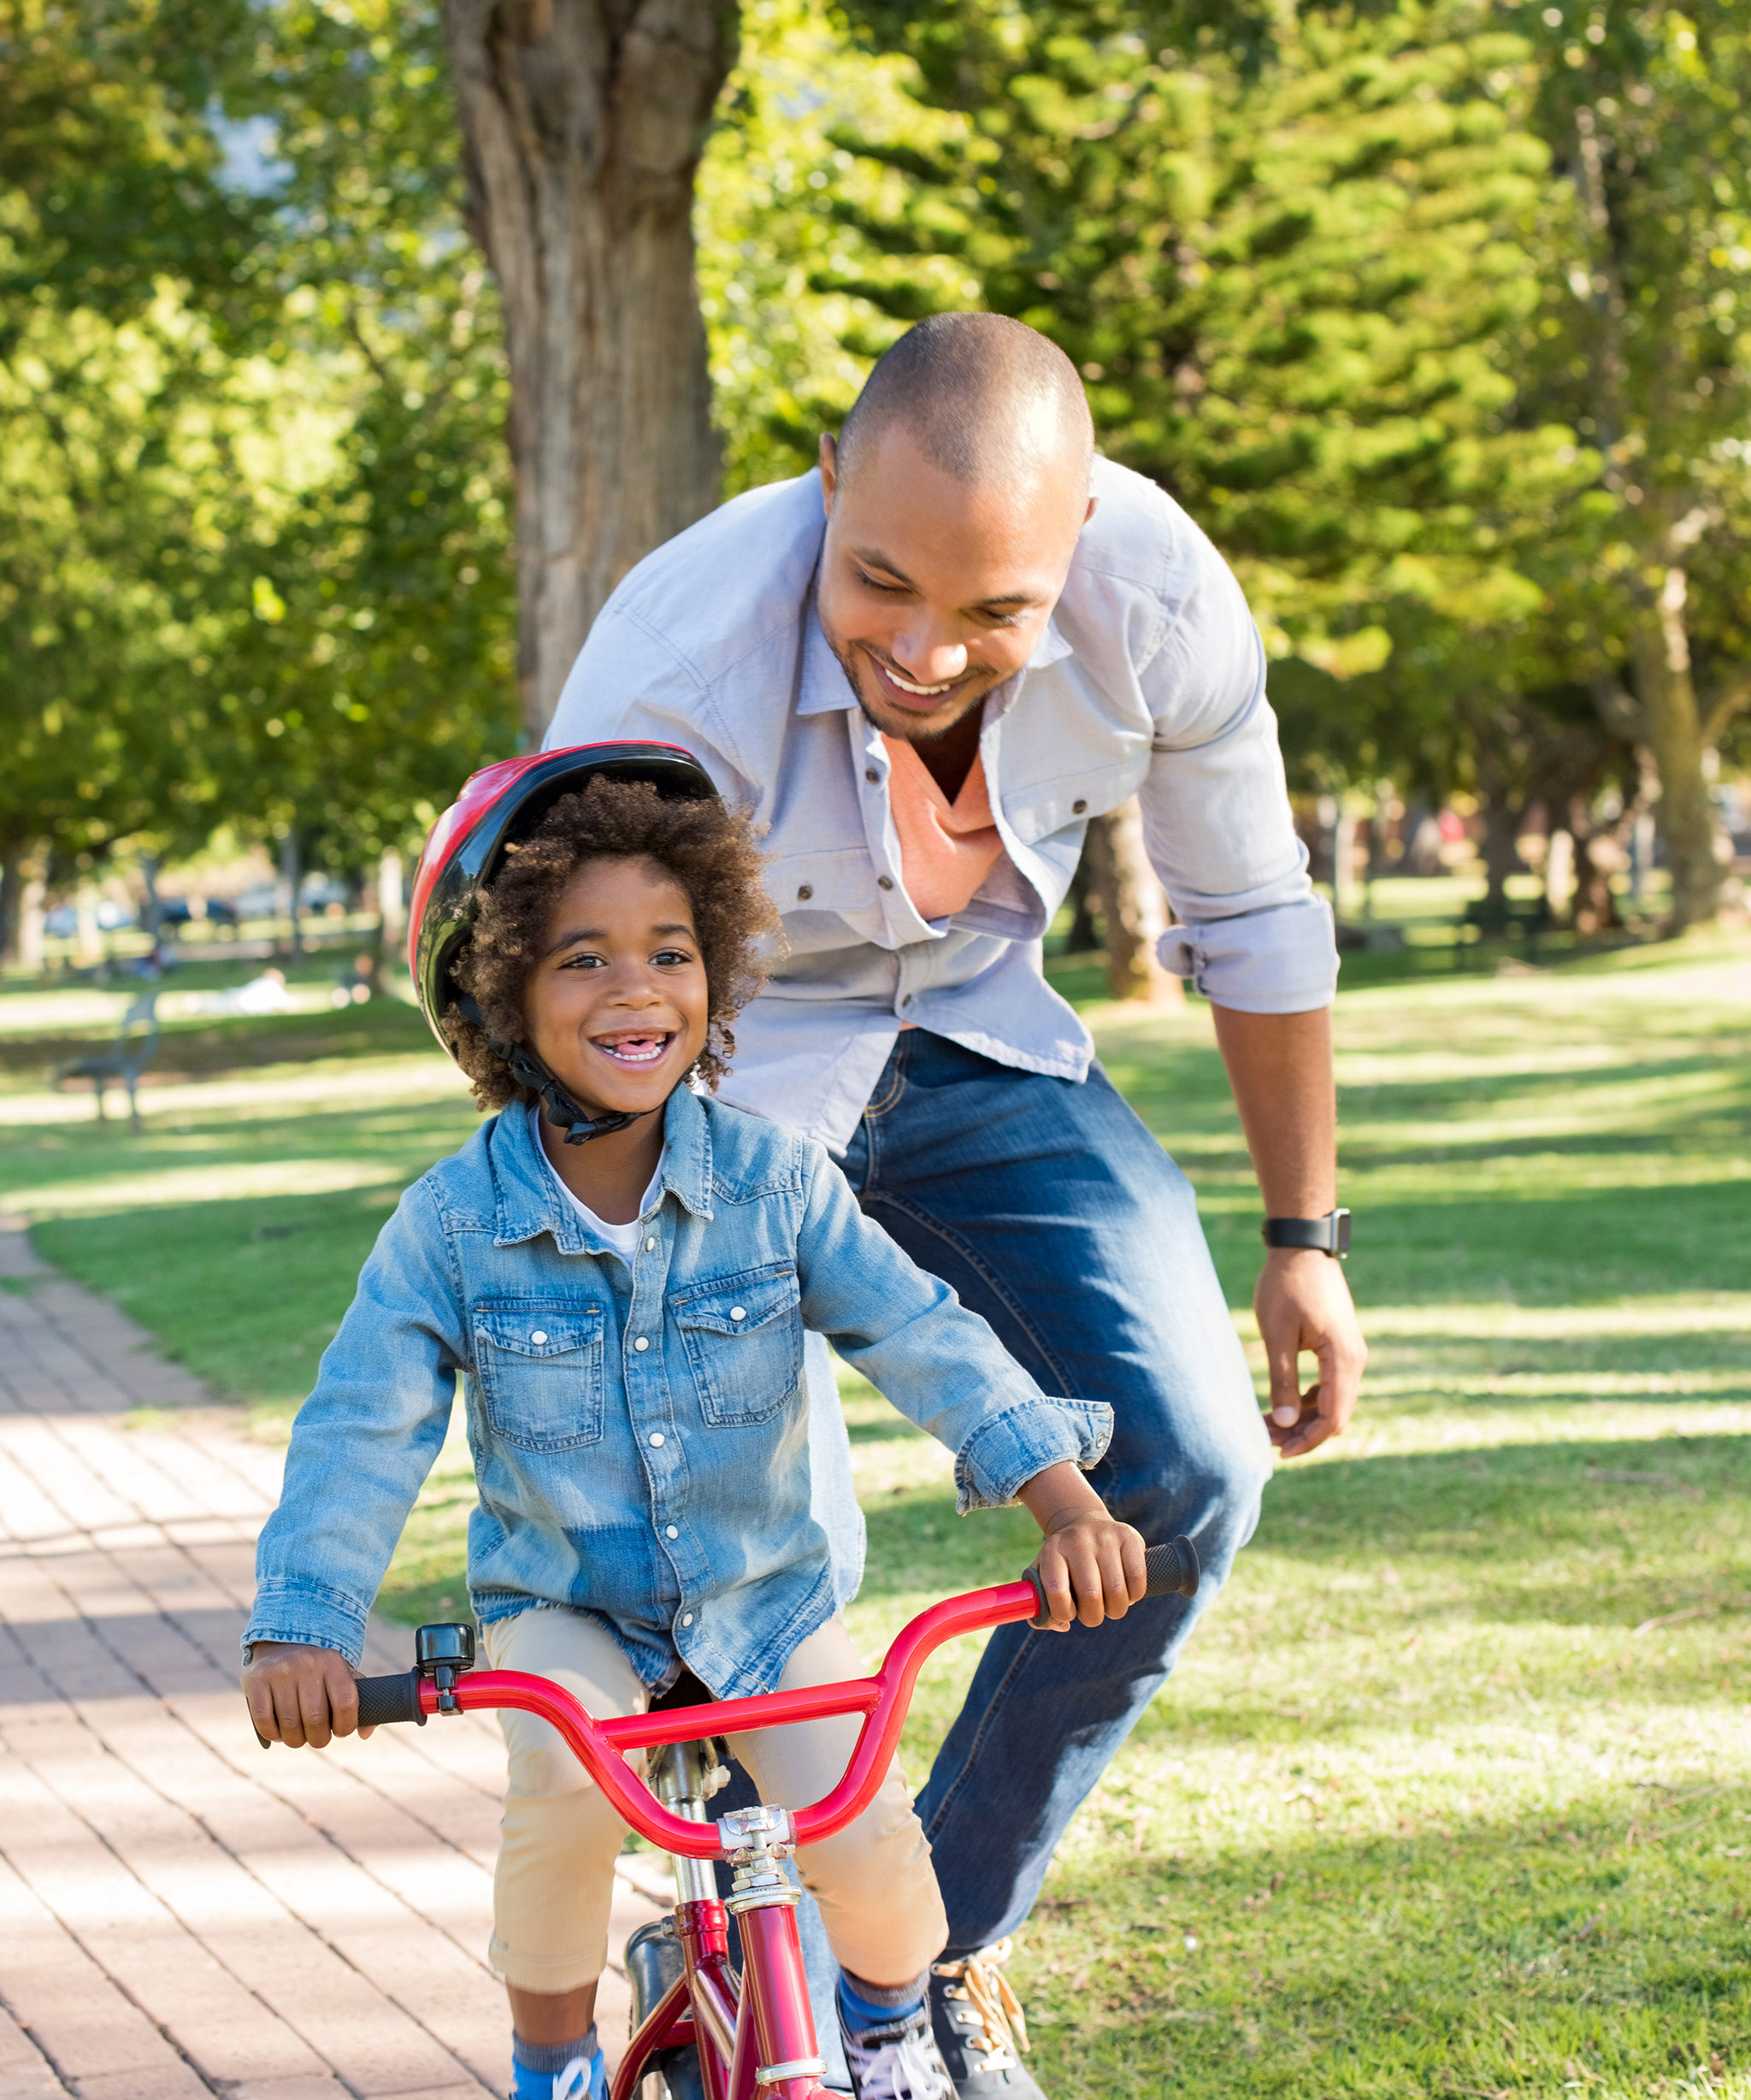 crop-iStock-691524104_super_father teaches child to ride bike_family_diverse